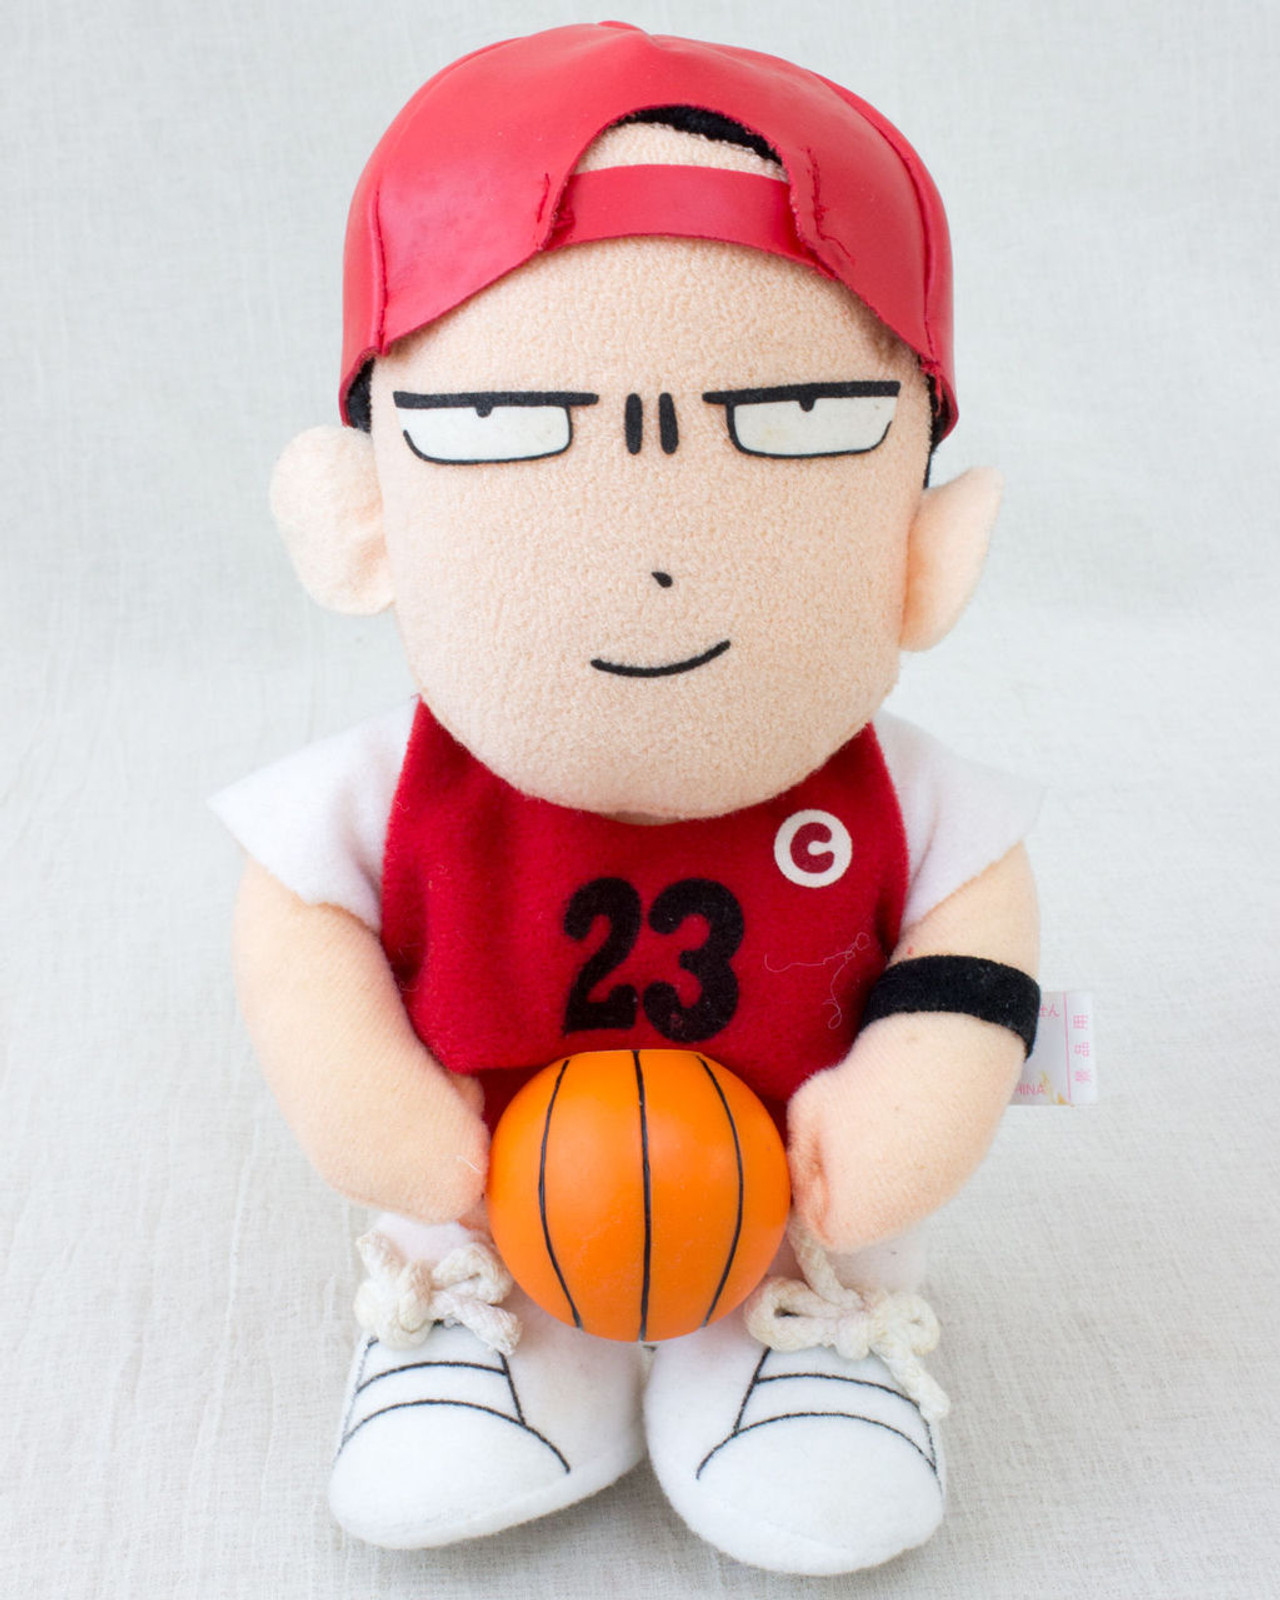 Takehiko Inoue Plush Doll Author of Slam Dunk JAPAN ANIME MANGA FIGURE